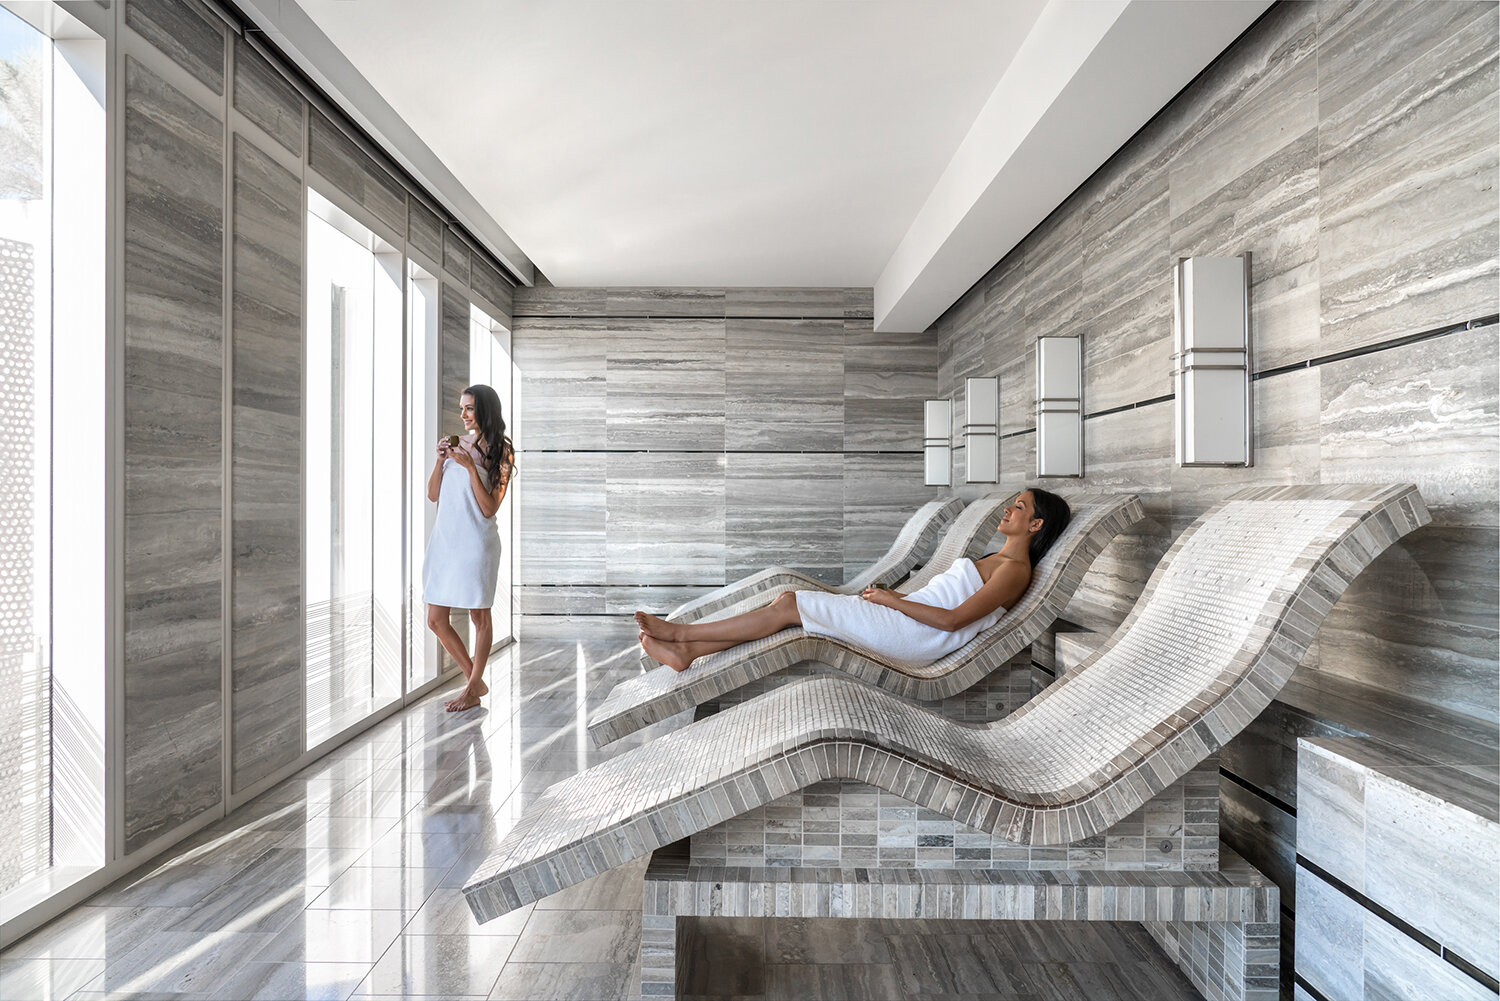 The spa's relaxation spaces include Tepidarium lounges.